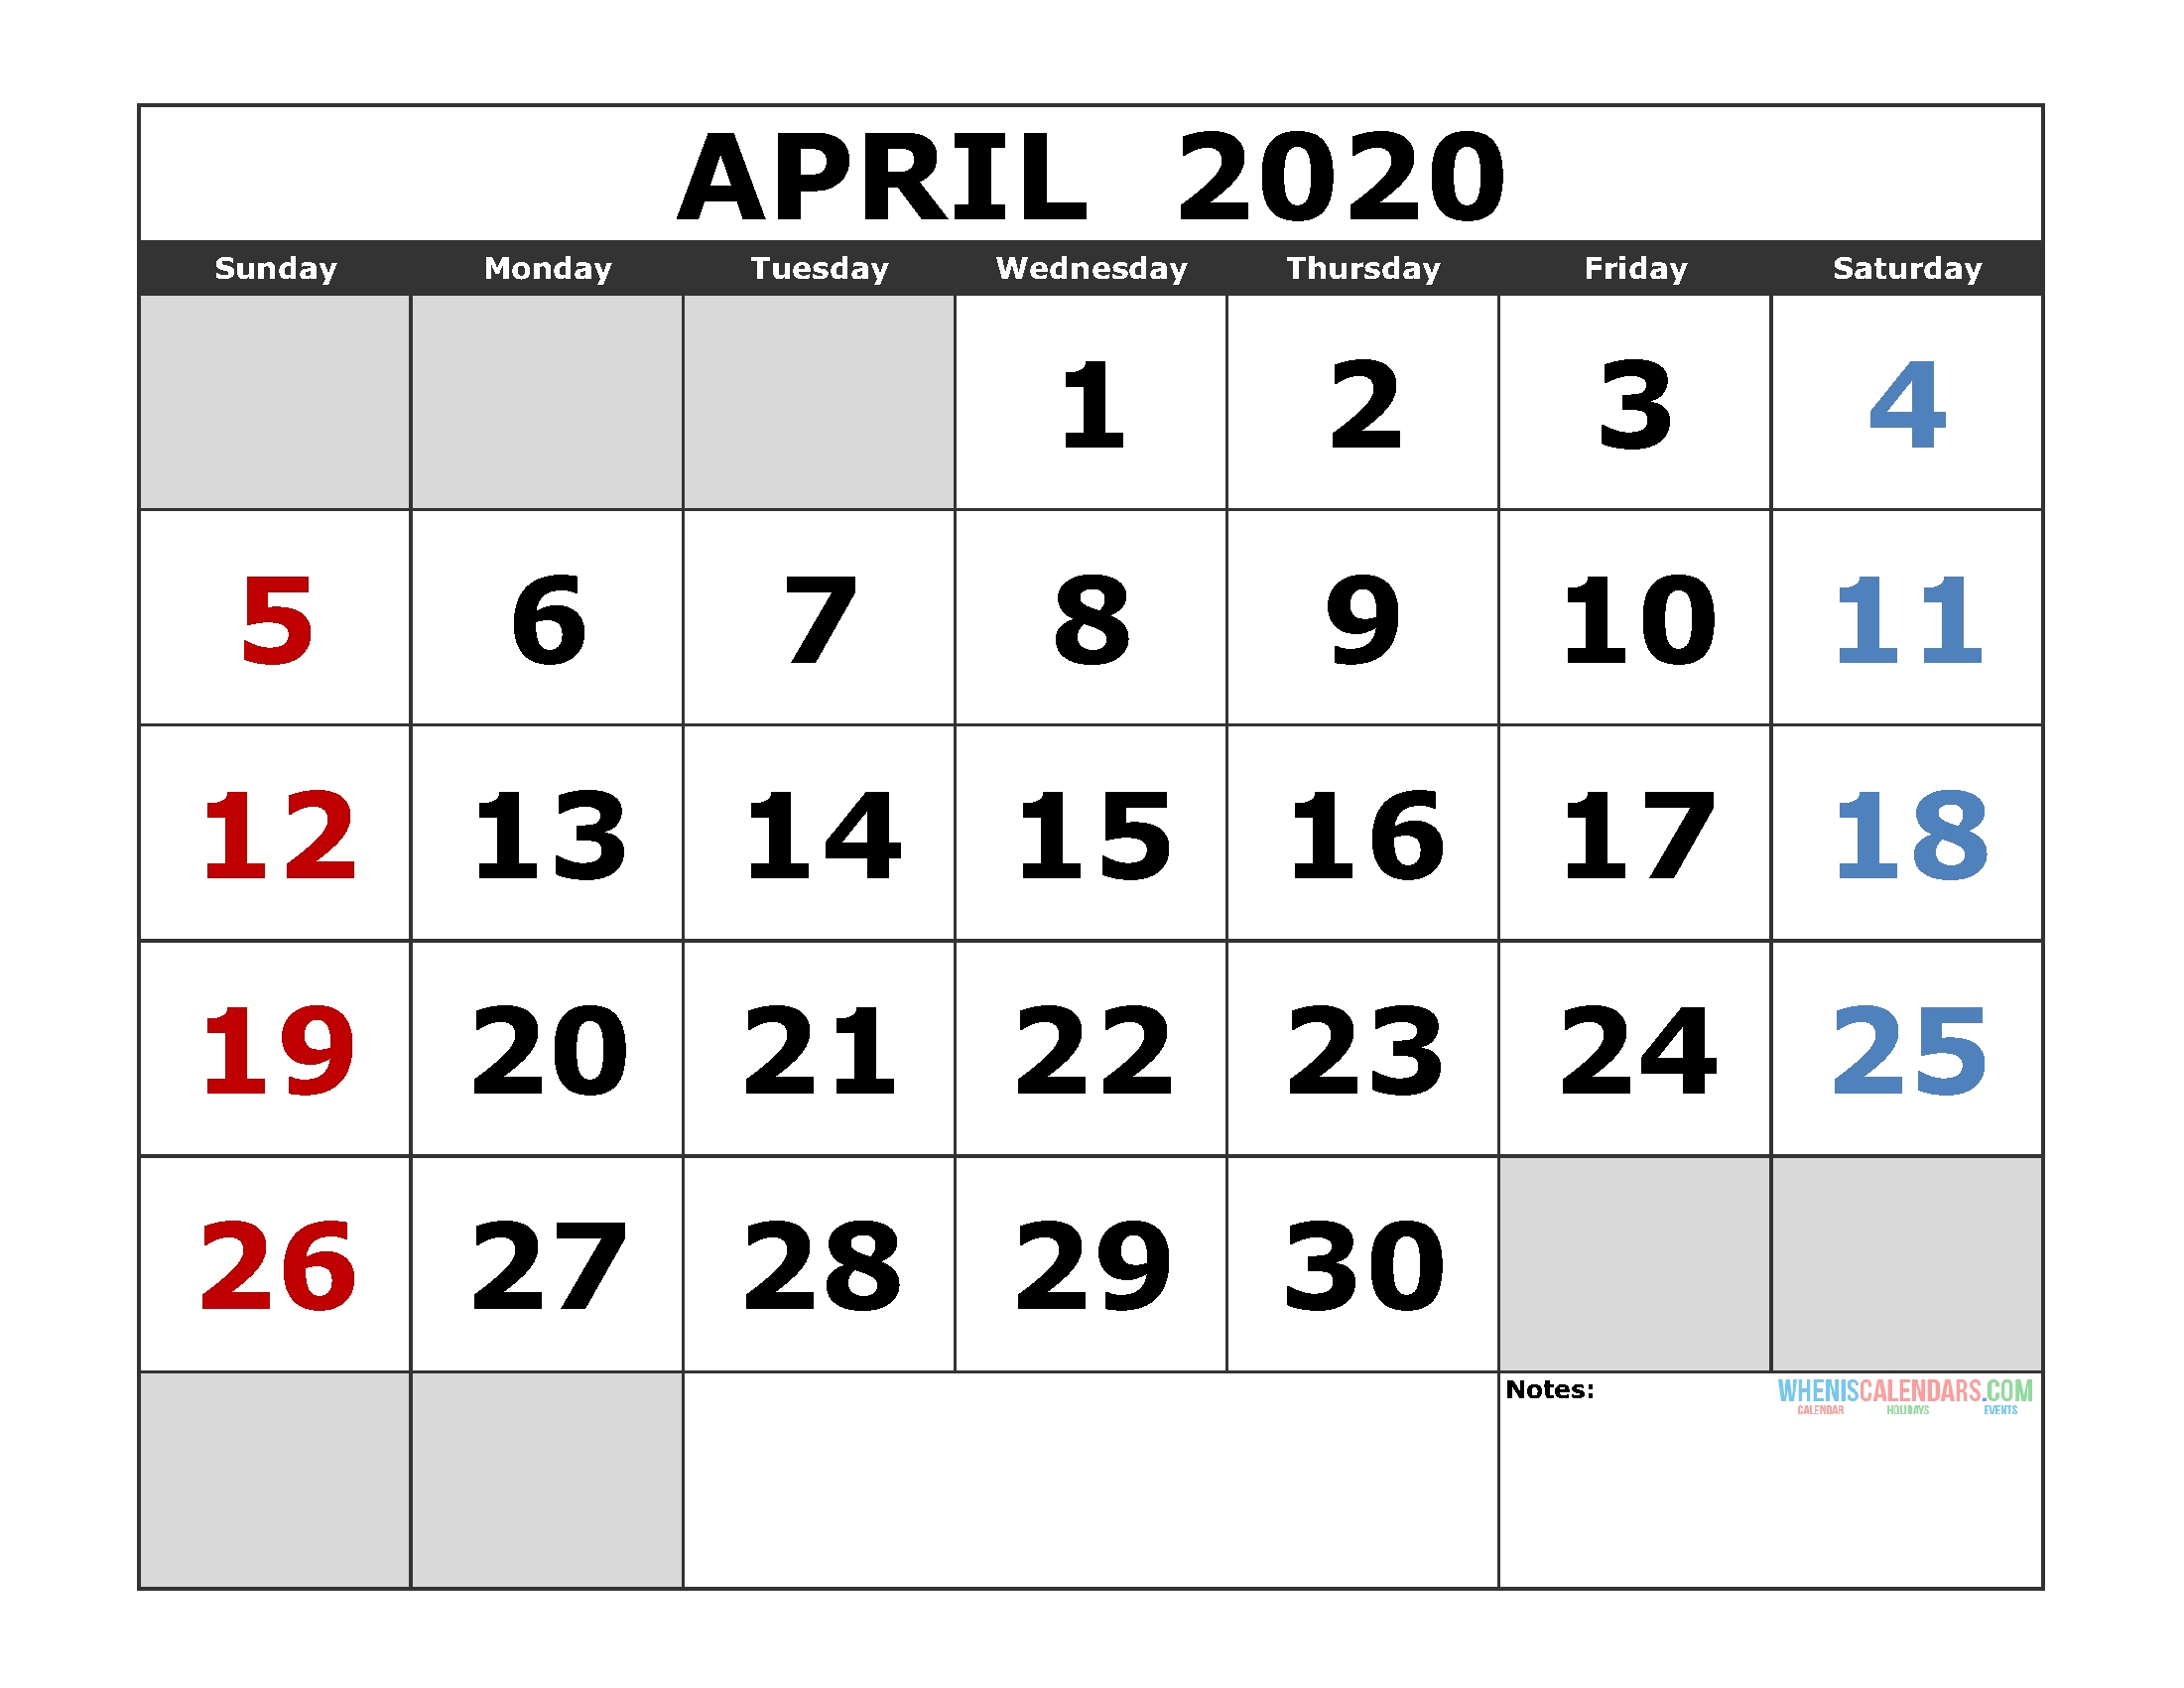 April 2020 Printable Calendar Template Excel, Pdf, Image [Us